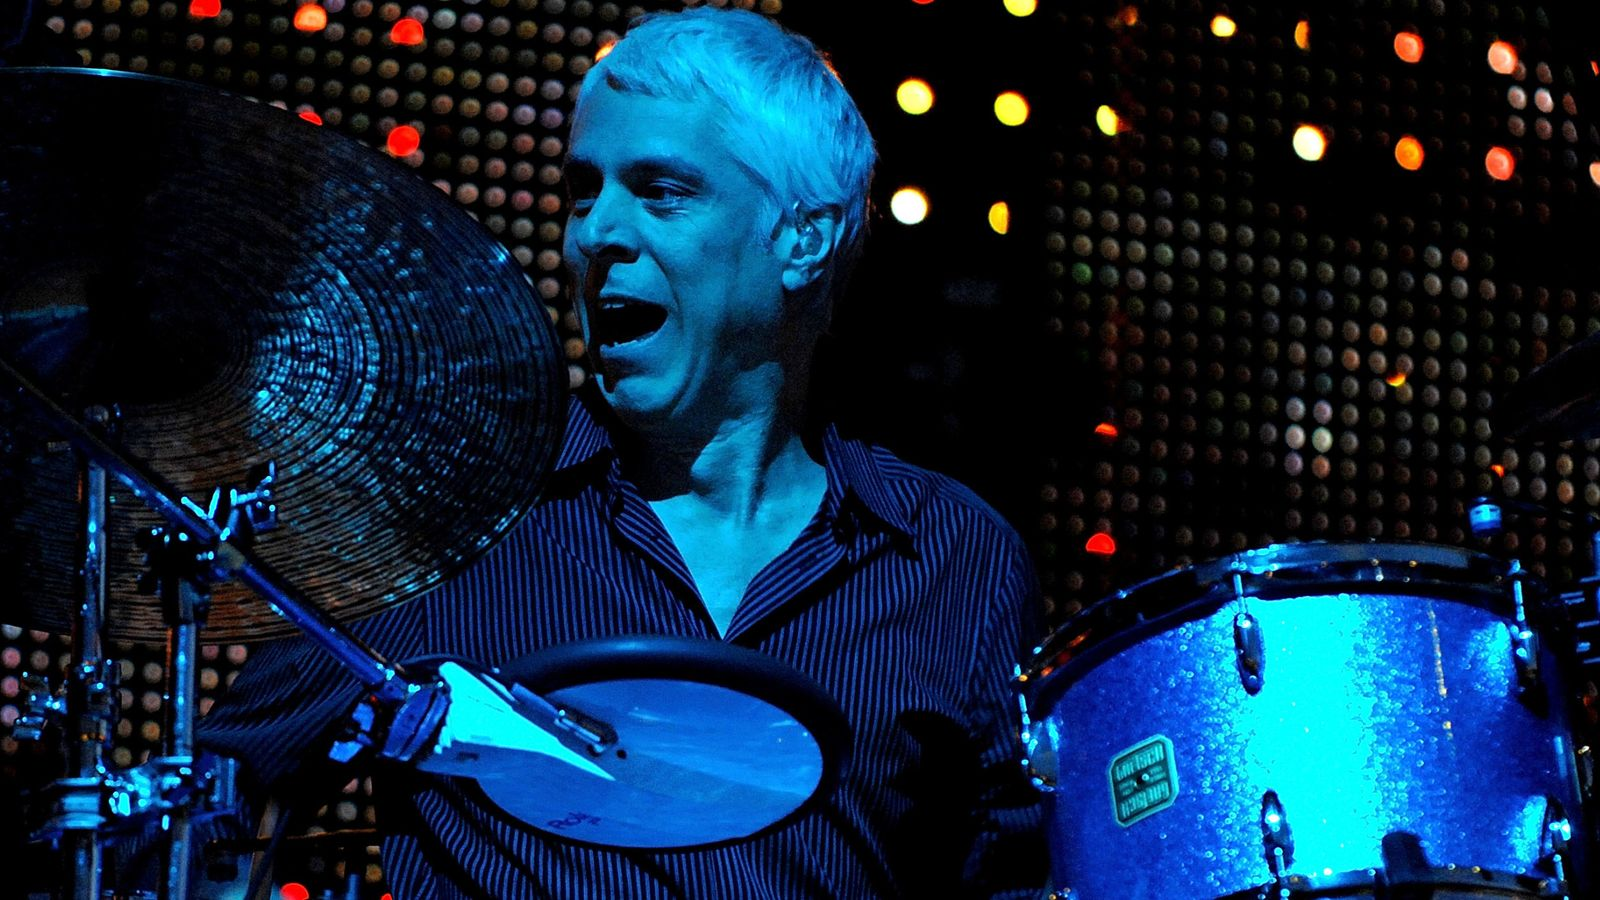 REM and King Crimson drummer Bill Rieflin dies aged 59